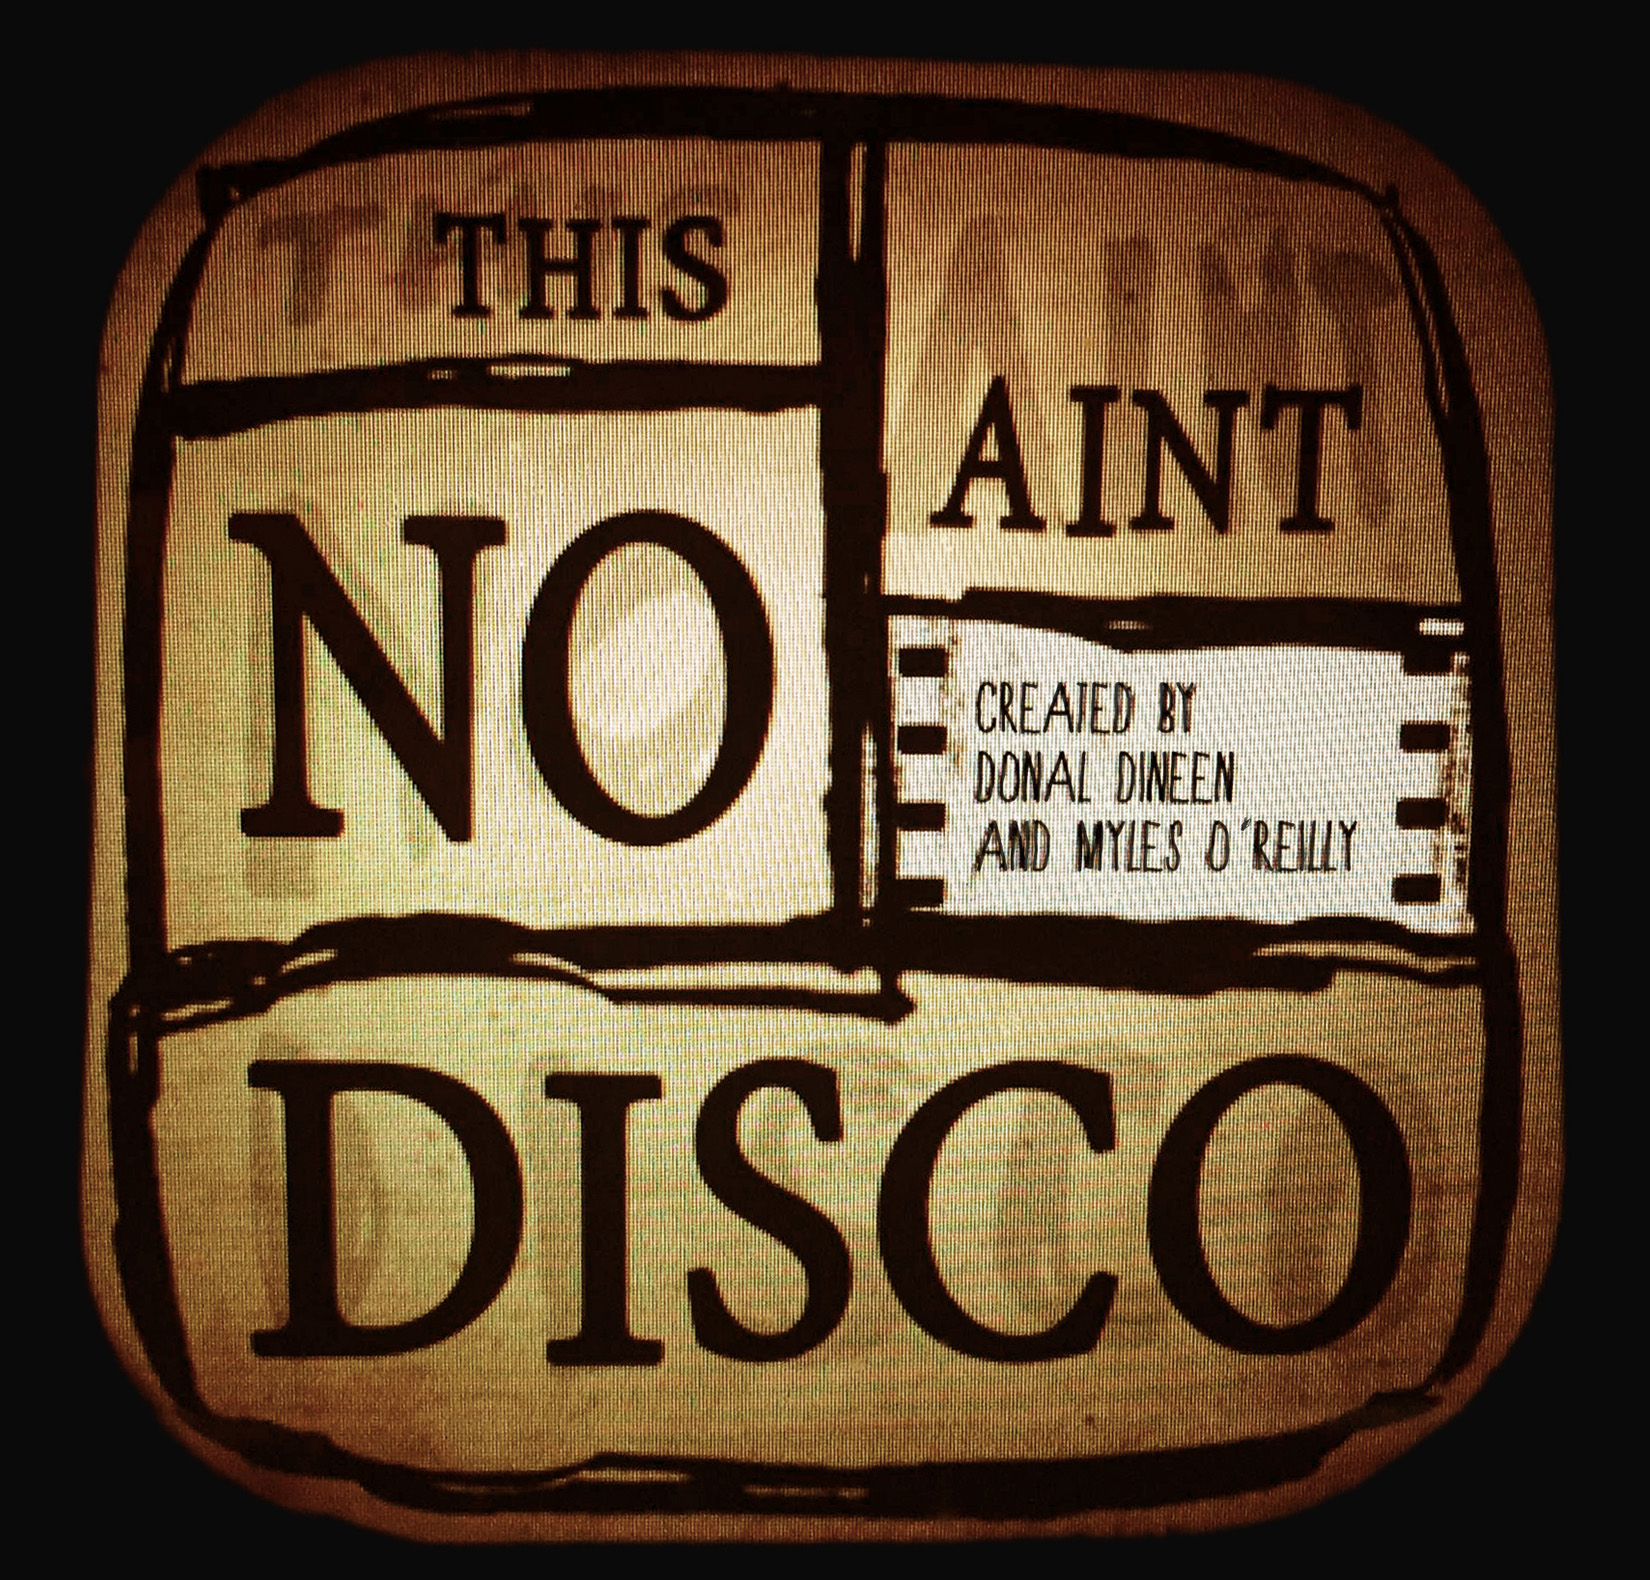 This Ain't No Disco